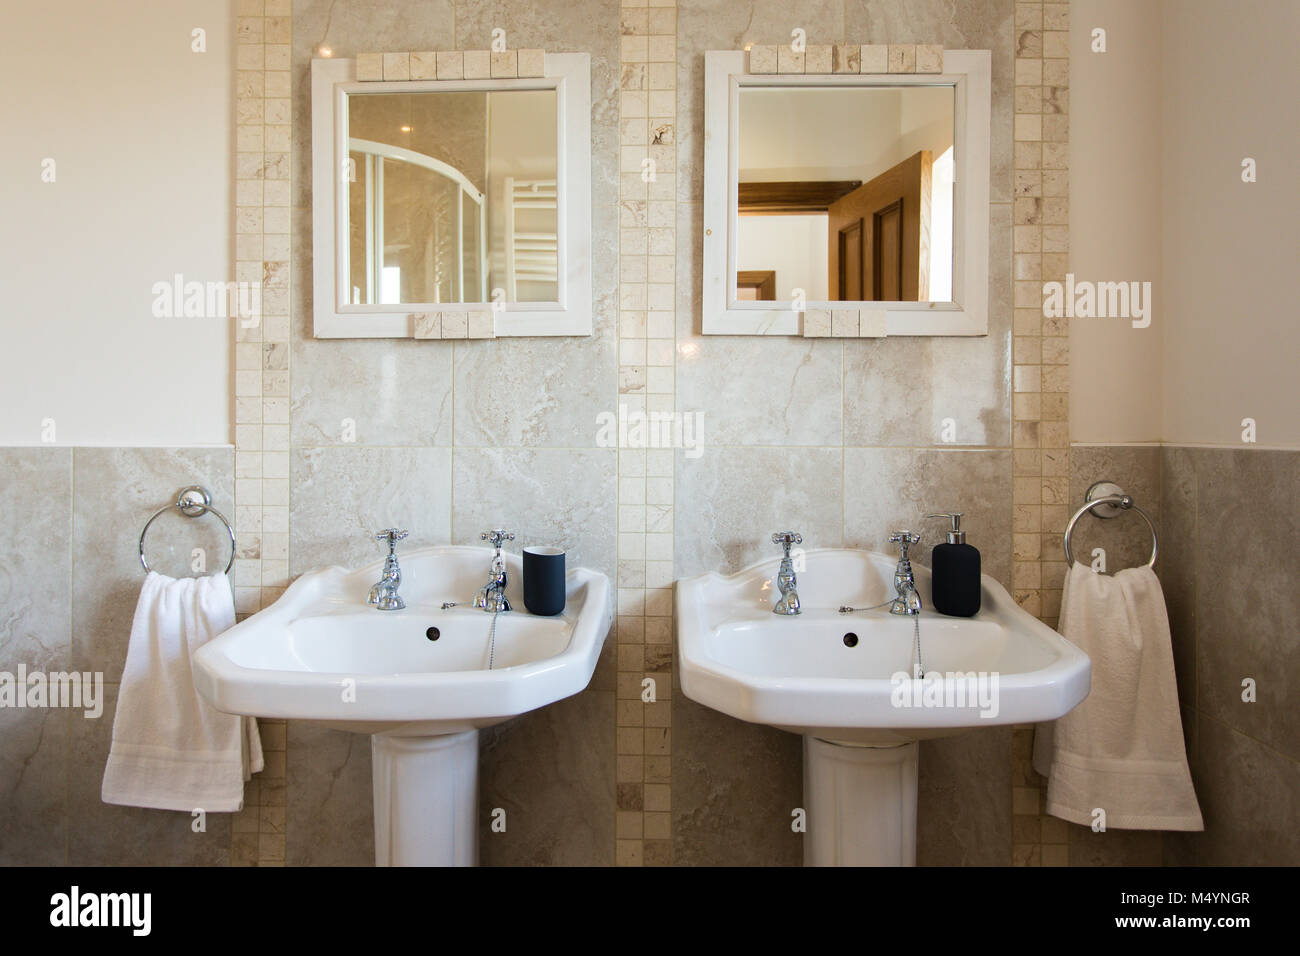 Family Bathroom With Double Basin Set Up With Two Mirrors And Two Stock Photo Alamy